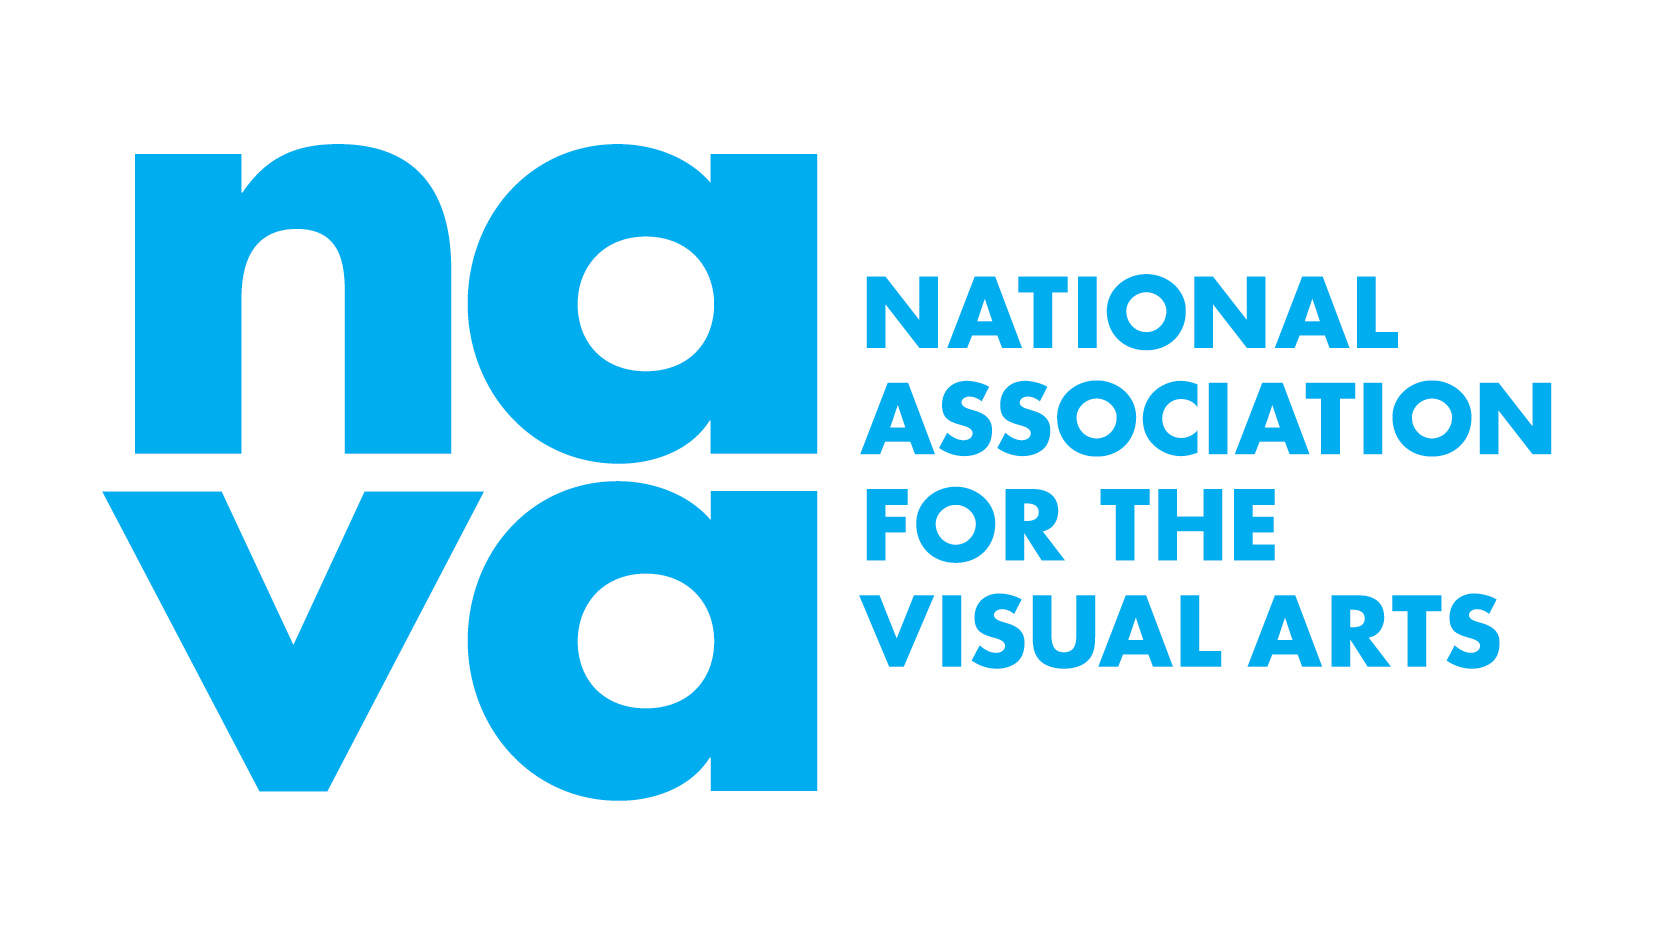 Visit the National Association for the Visual Arts' website